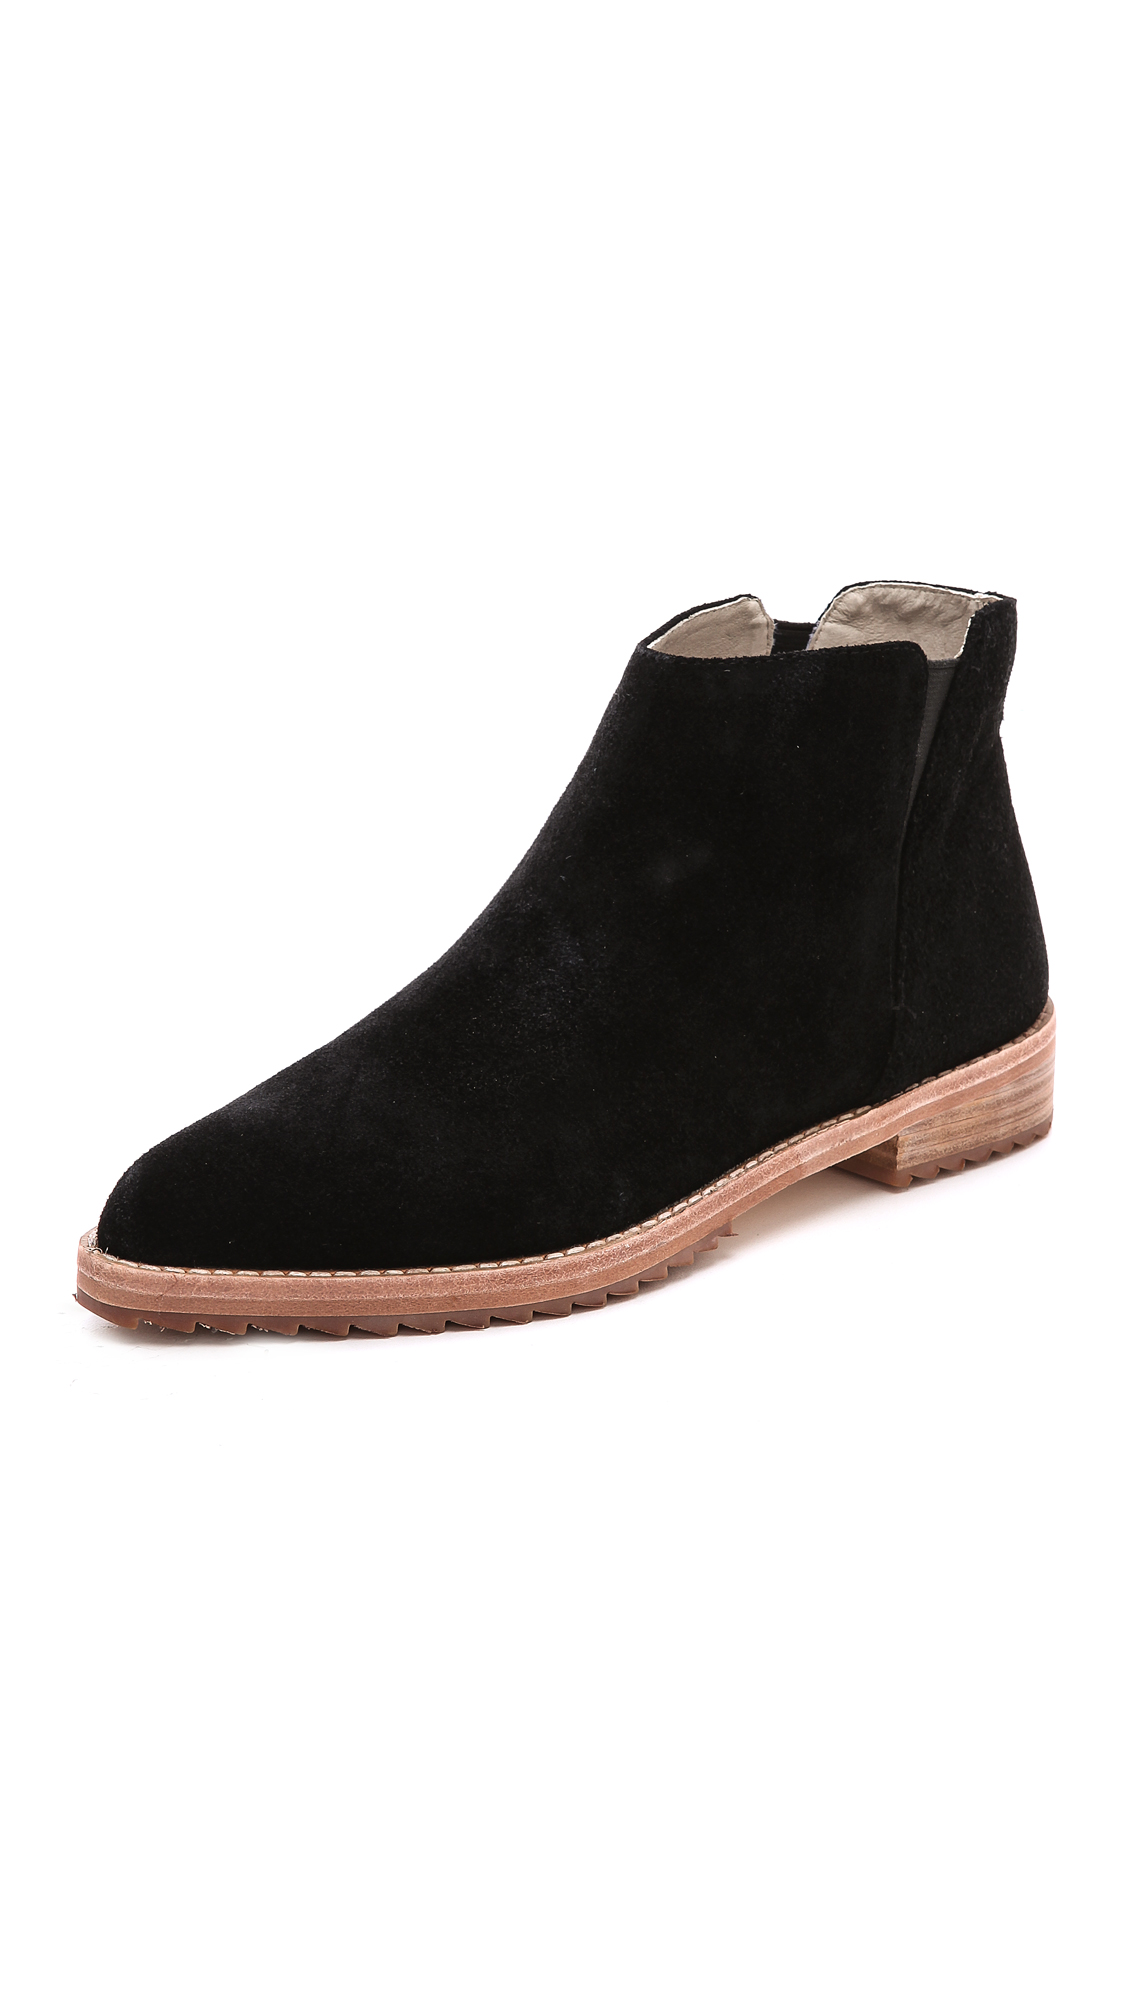 Shop Designer Shoes on Sale. Shop shoes in the sale section at Anthropologie. Browse Jeffrey Campbell, Seychelles, Matt Bernson & more of your favorite designers.